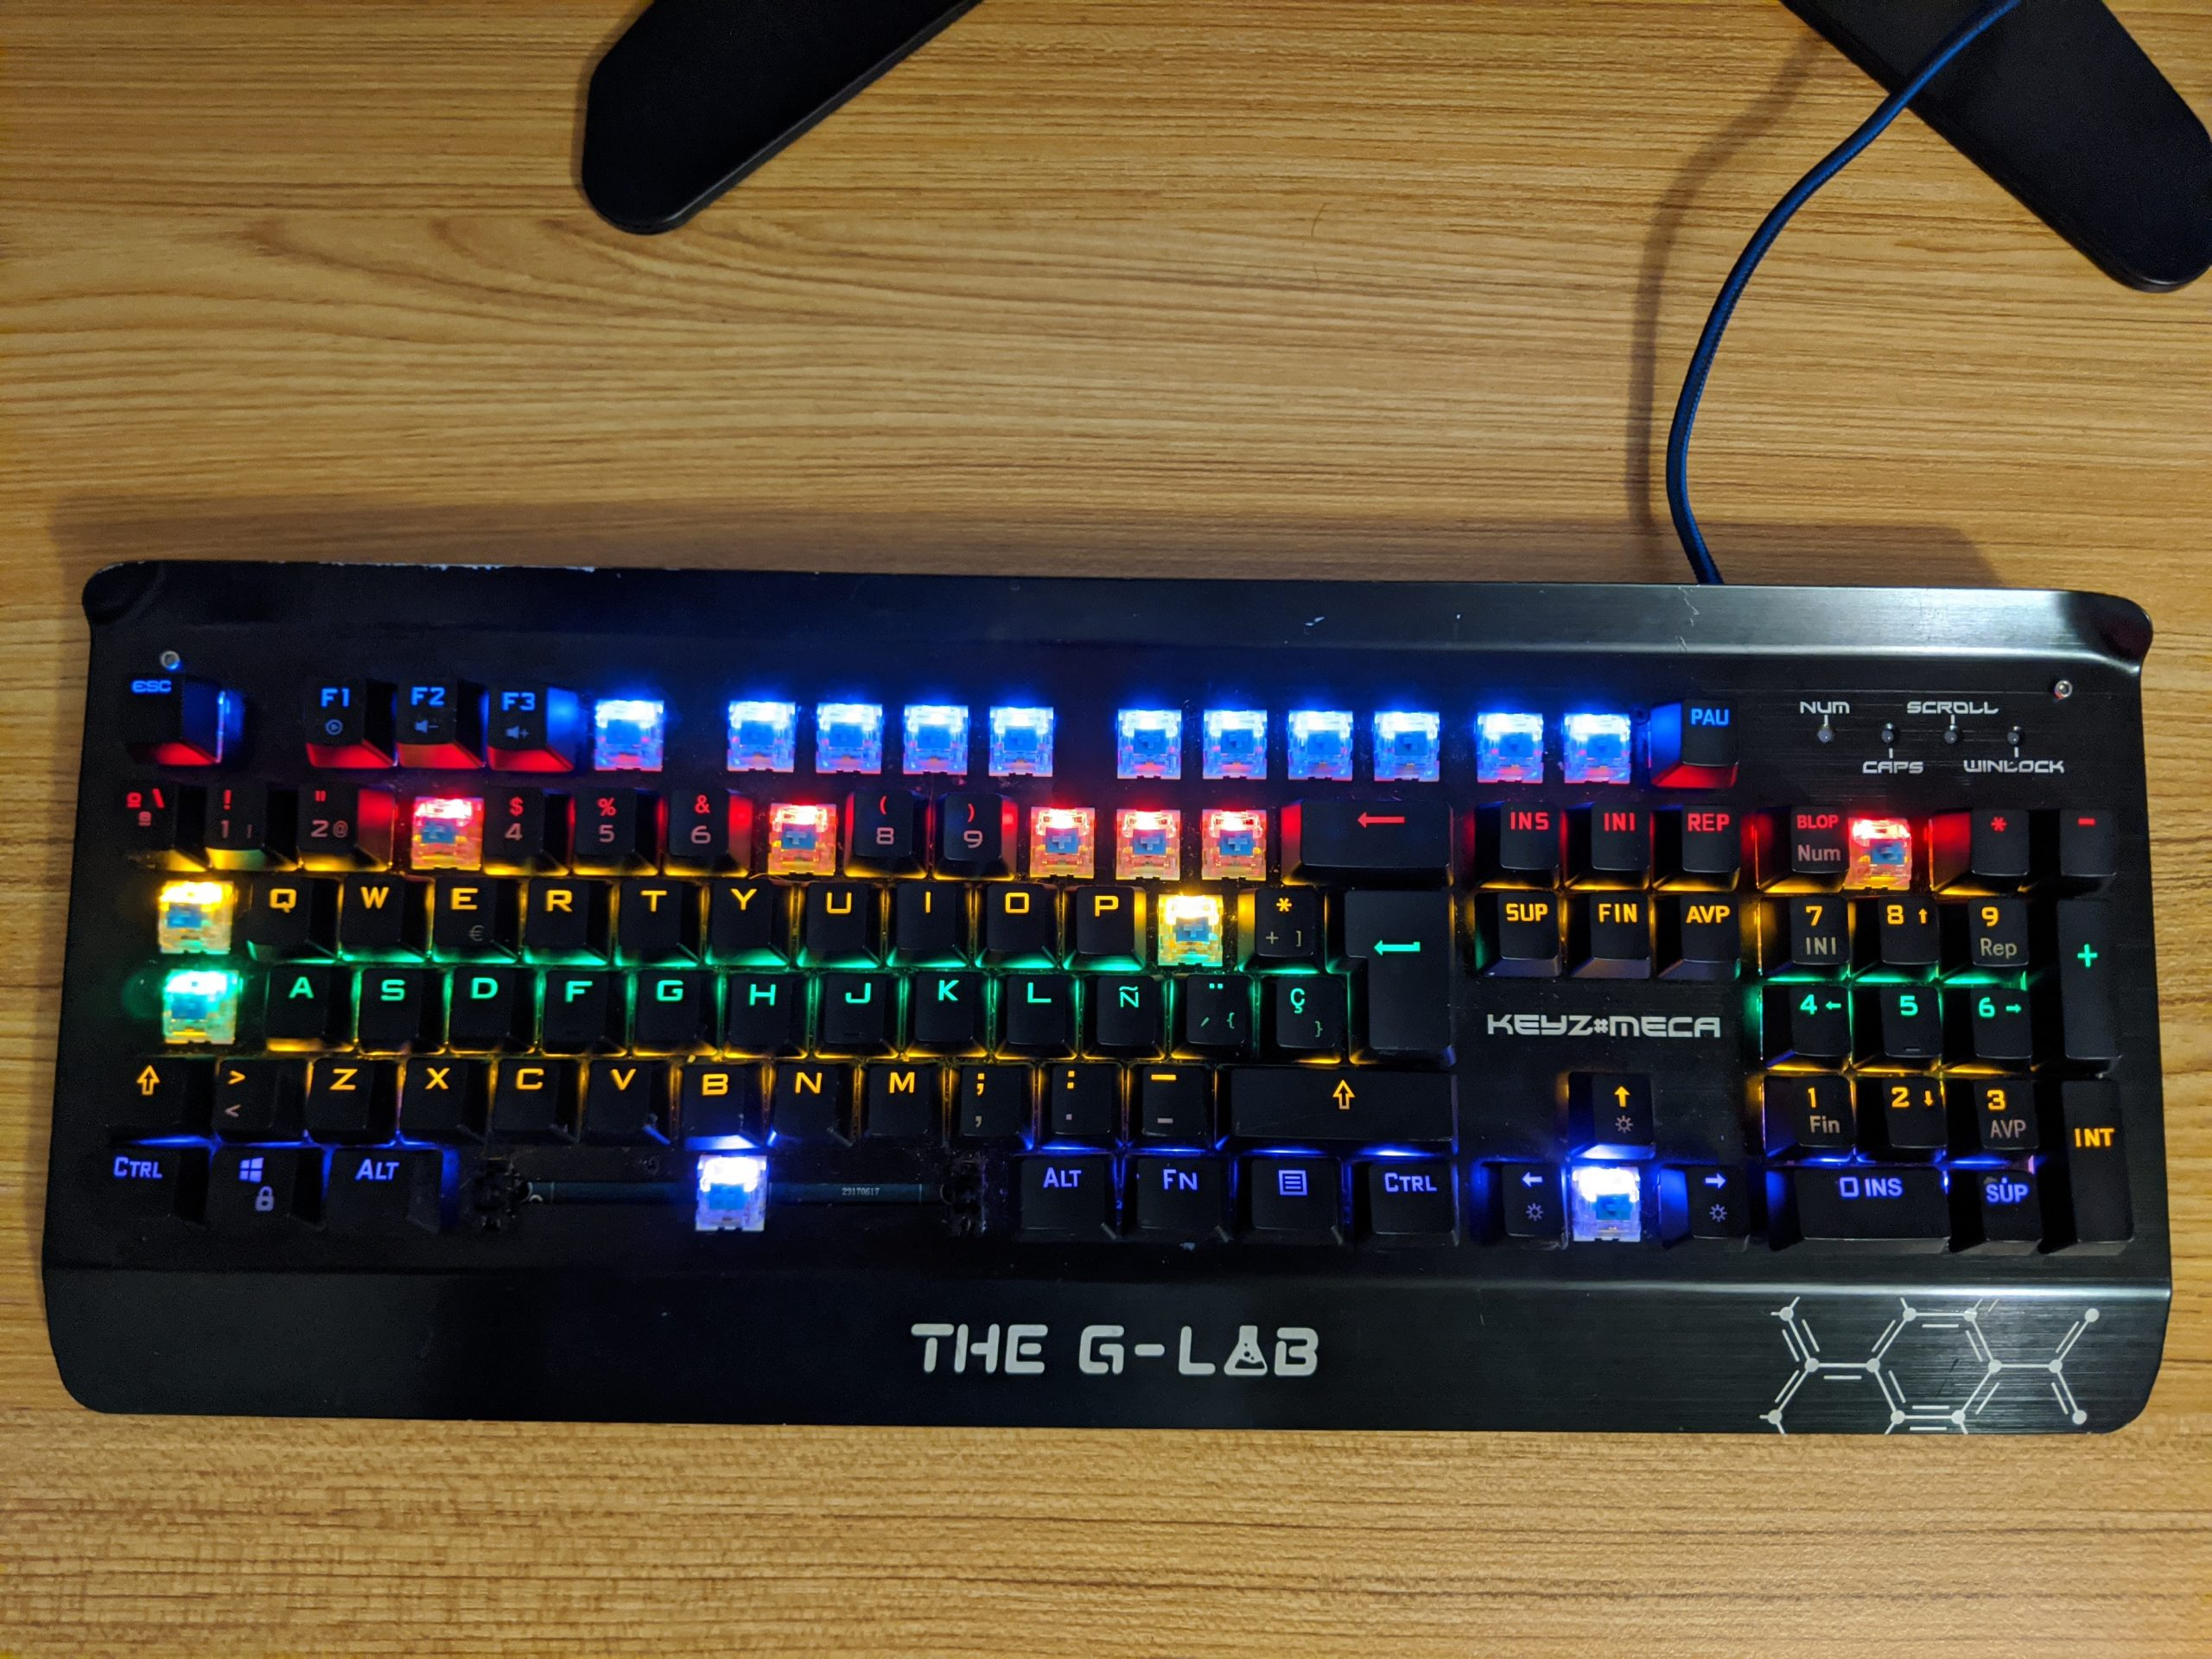 The G-Lab KEYZ-MECA/SP keyboard with some keycaps missing.